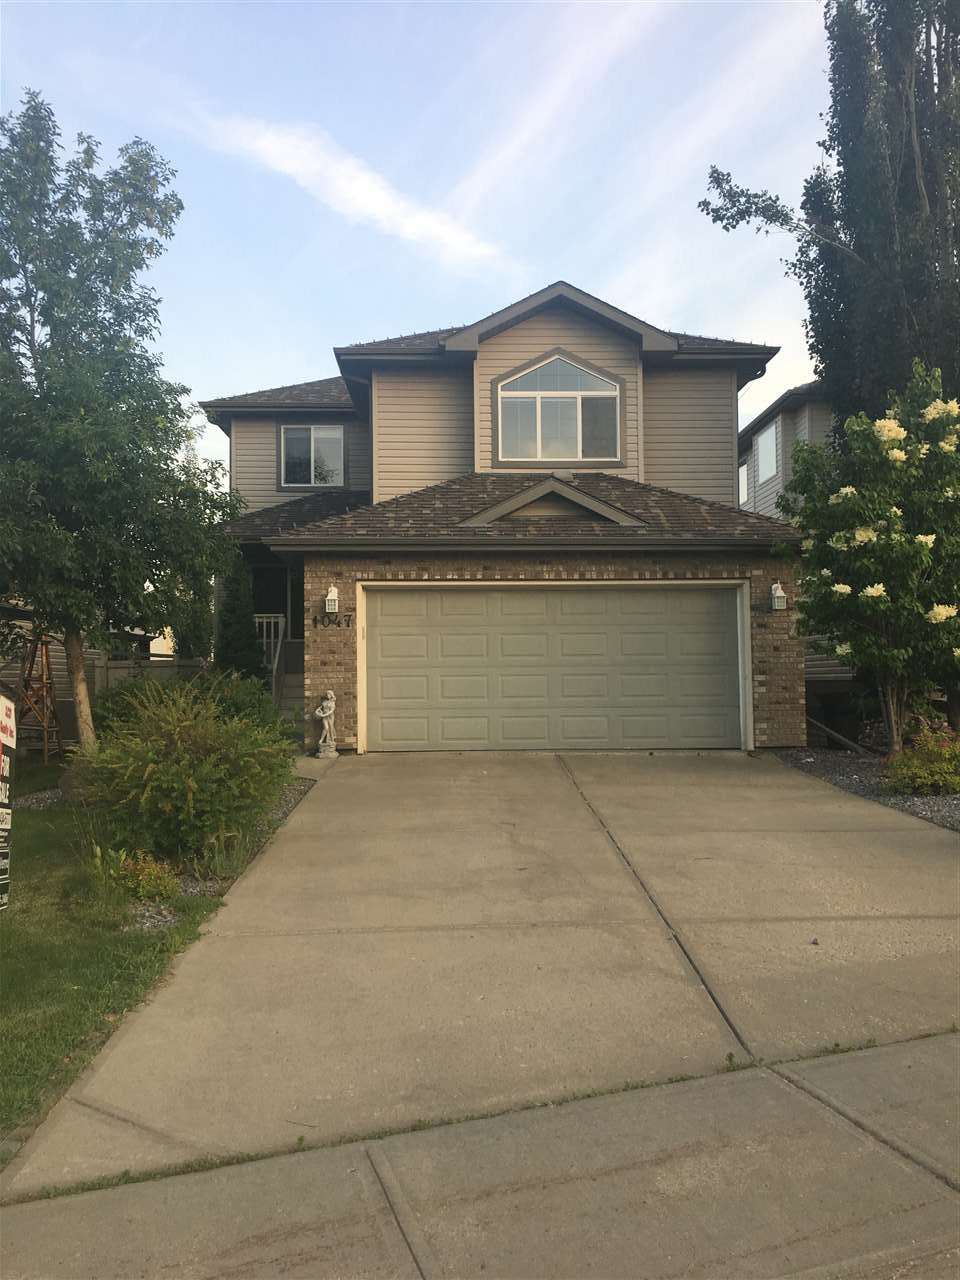 Main Photo: 1047 LEGER Boulevard in Edmonton: Zone 14 House for sale : MLS® # E4076291